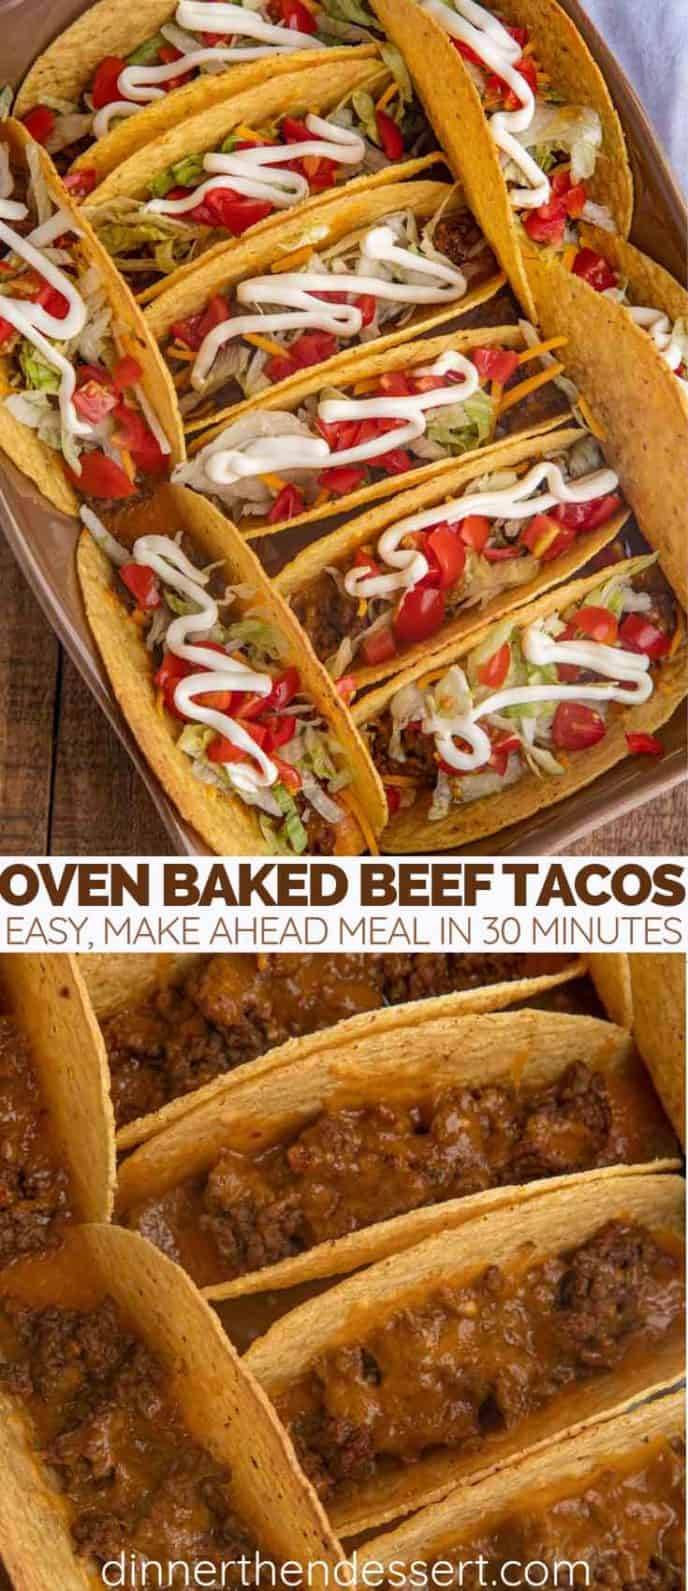 Beef tacos with lettuce, tomato and sour cream